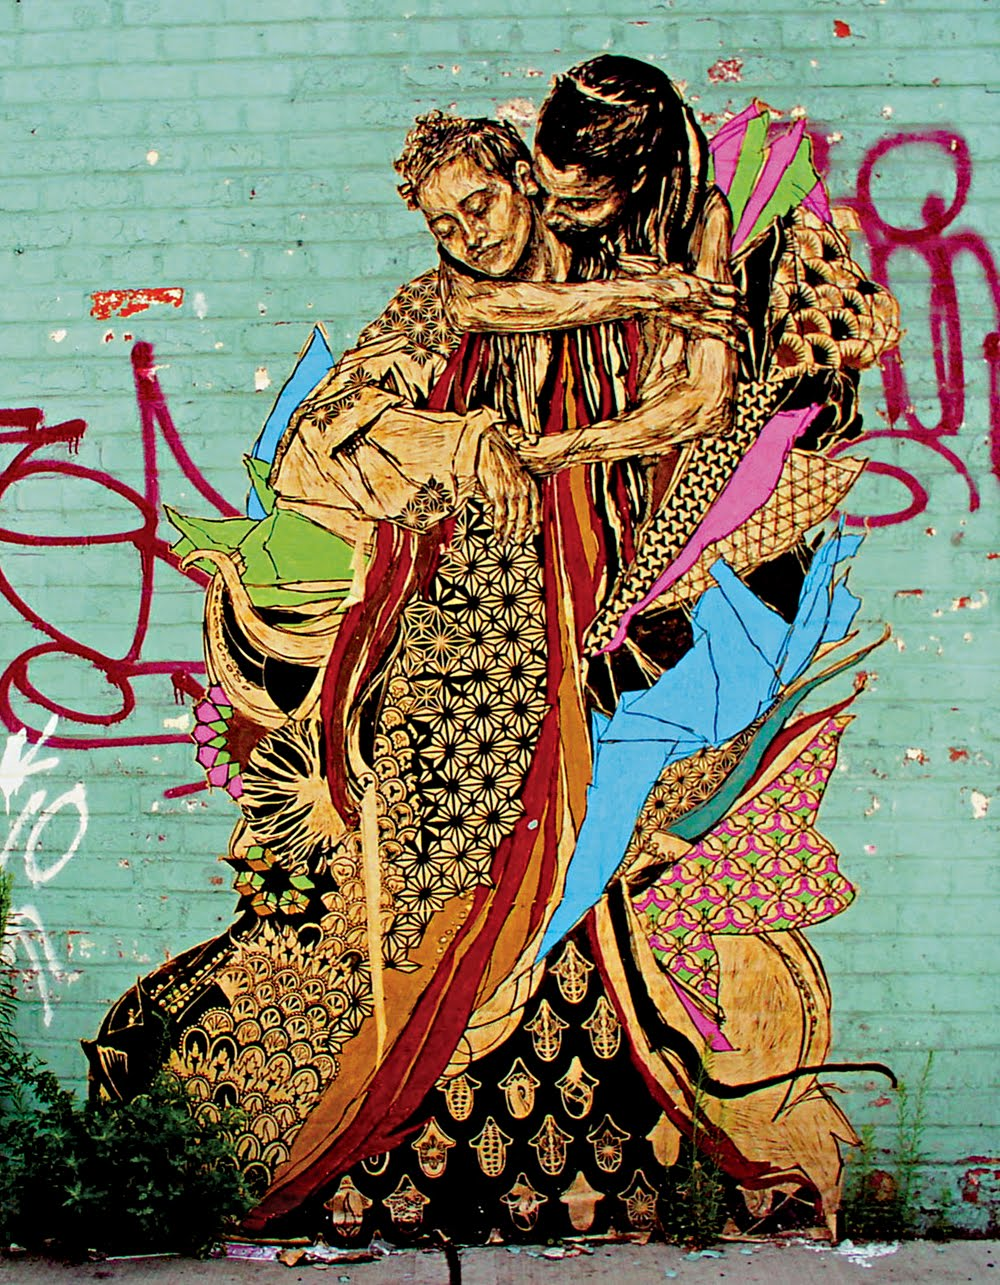 Swoon  Street Artist  Publish With Glogster